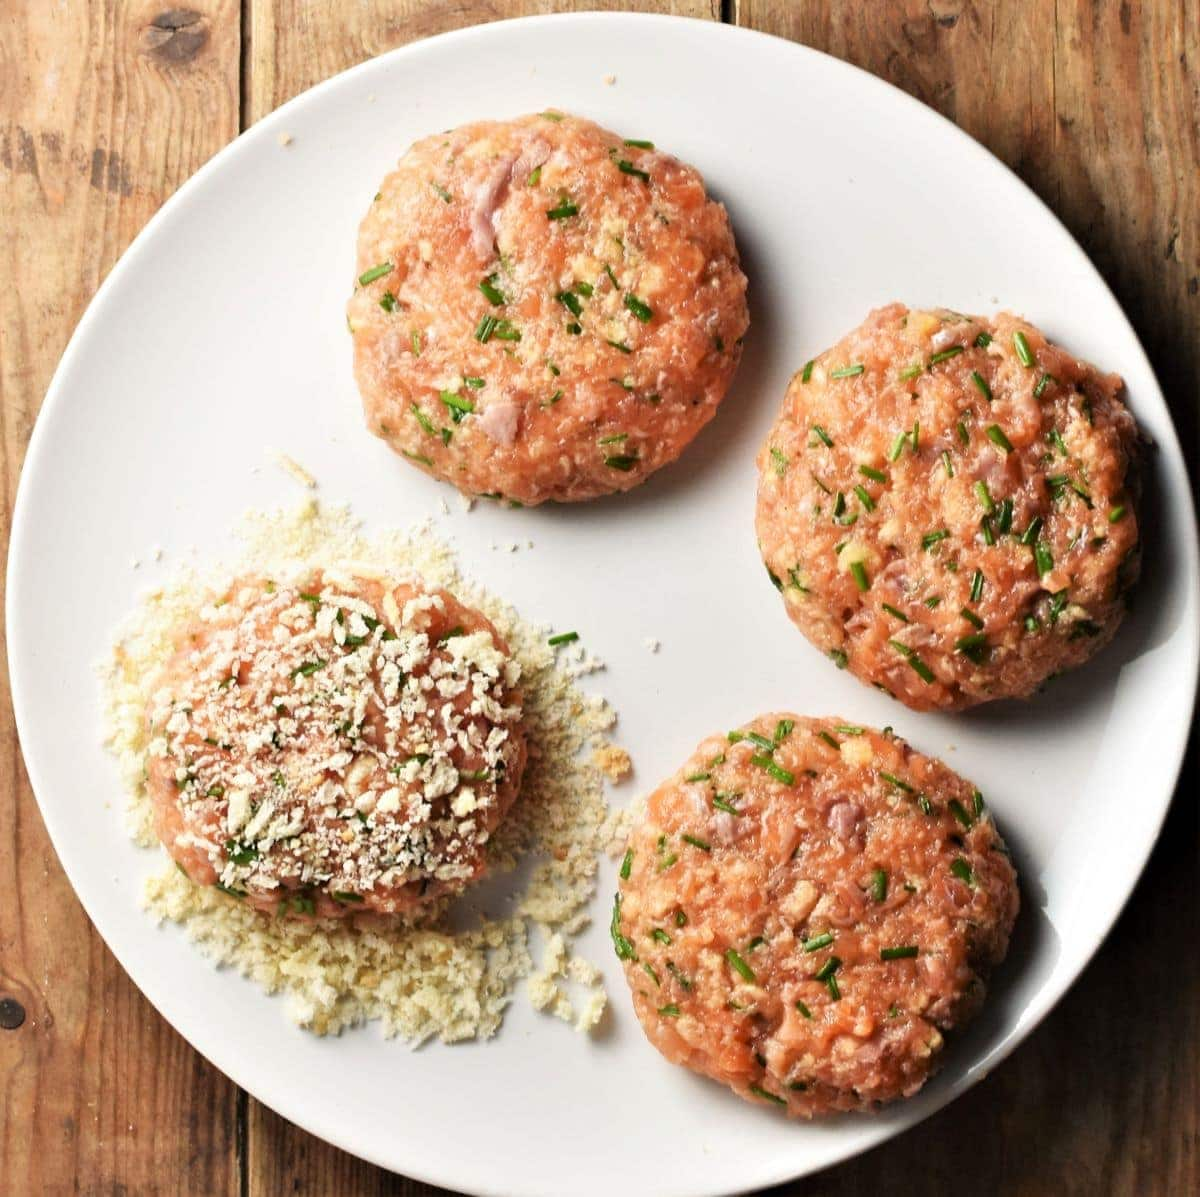 4 salmon burgers with breadcrumbs on large plate.